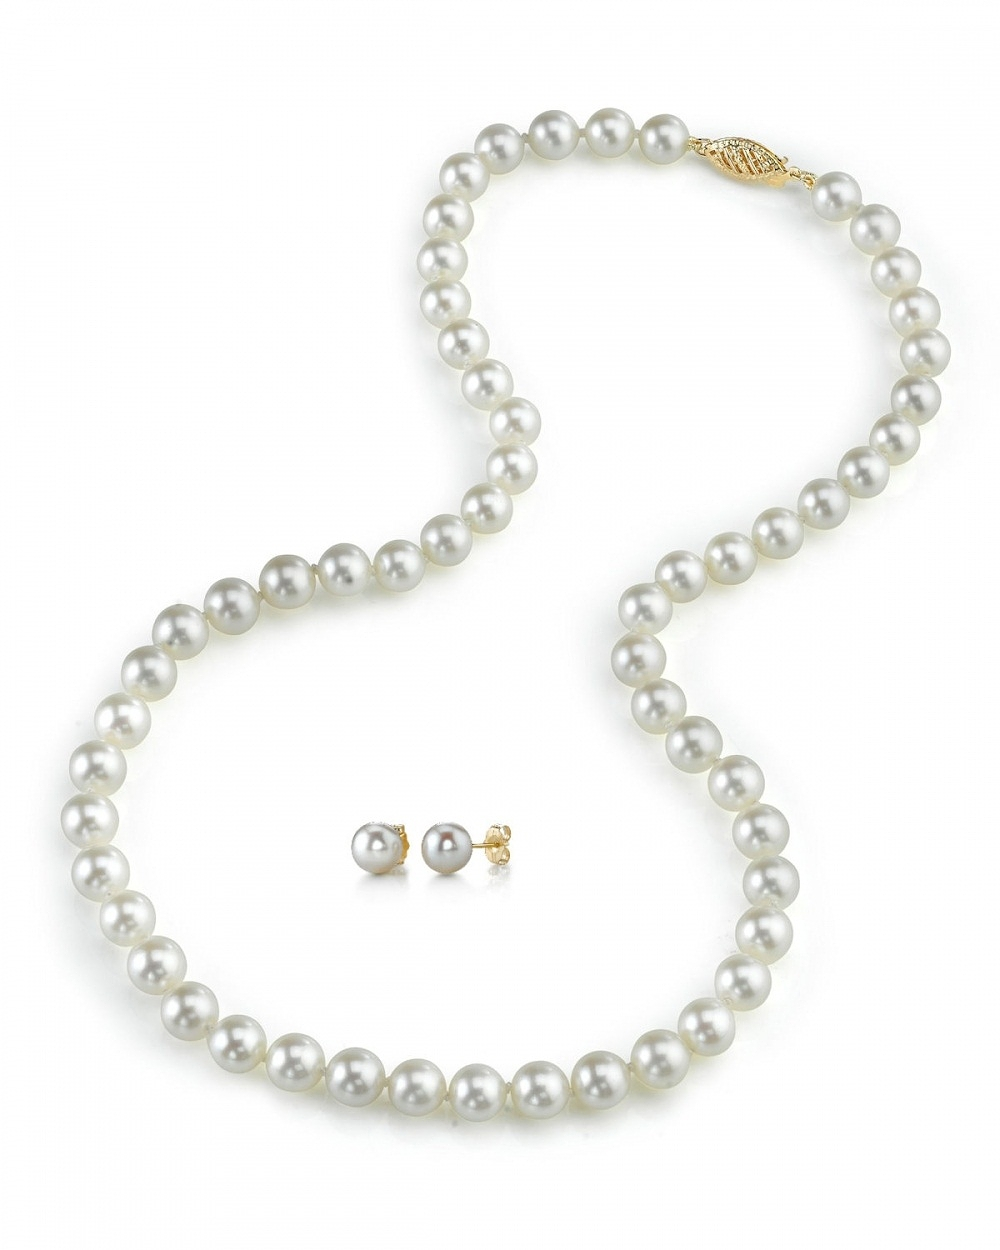 7.5-8.0mm Japanese White Akoya Pearl Necklace & Earrings ...